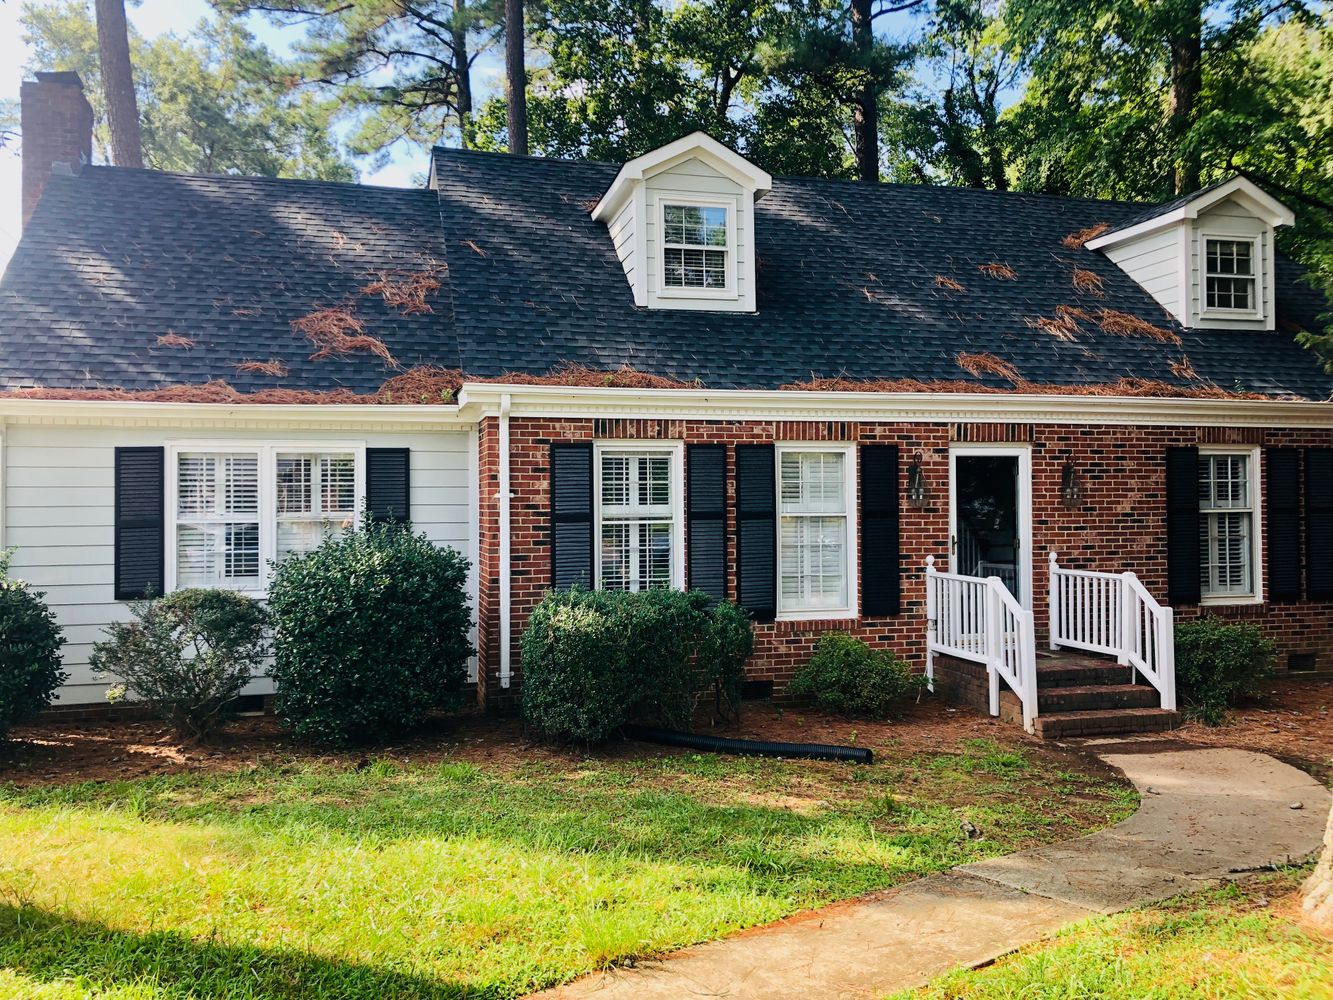 Alcove: Bedrooms for rent at 1248 Sturdivant Dr, Cary NC 27511